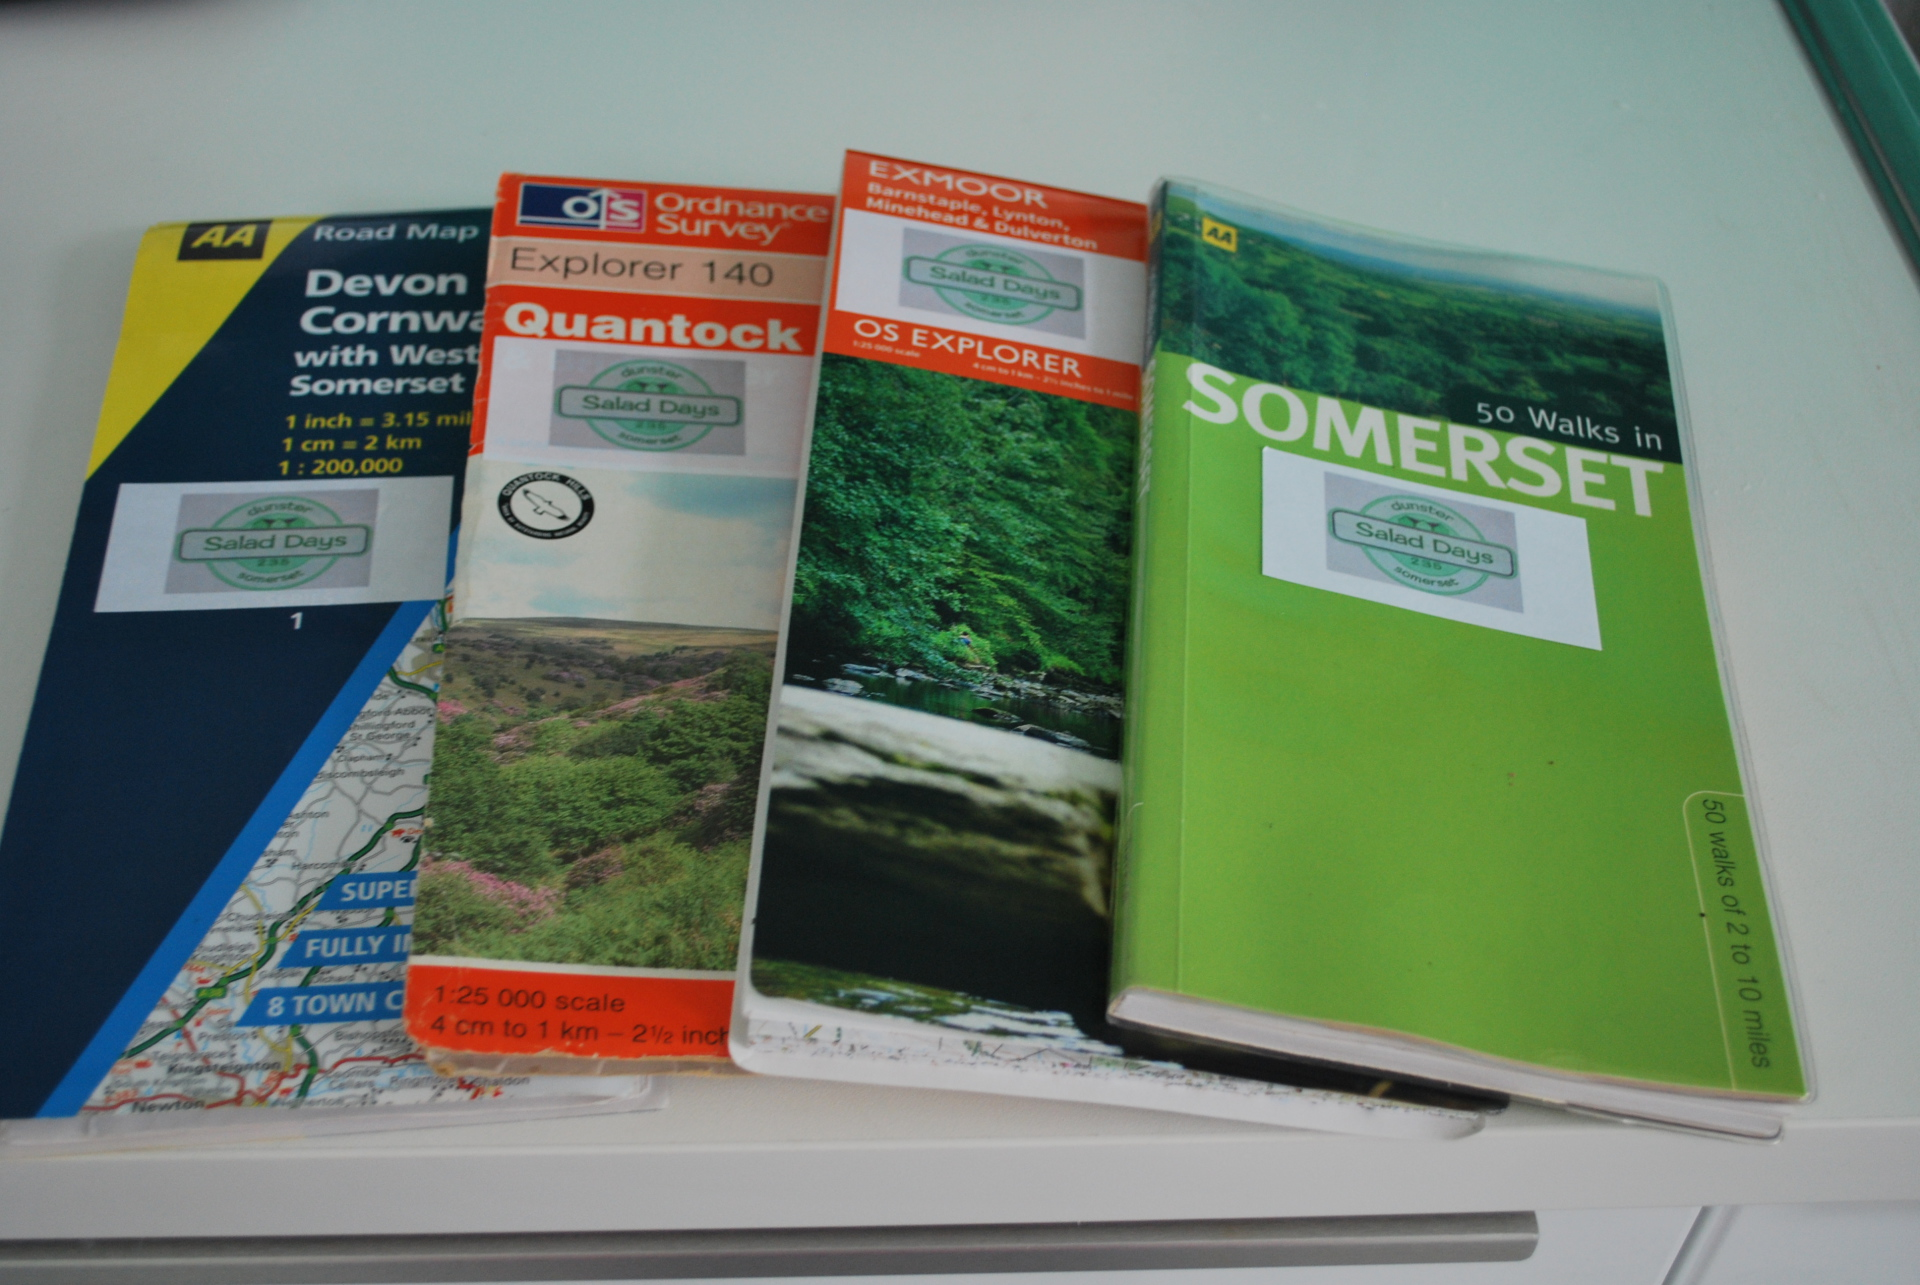 Dunster, beach, hut, salad days, beach hut, chalet, dunster beach, maps, AA, ordance survey, OS